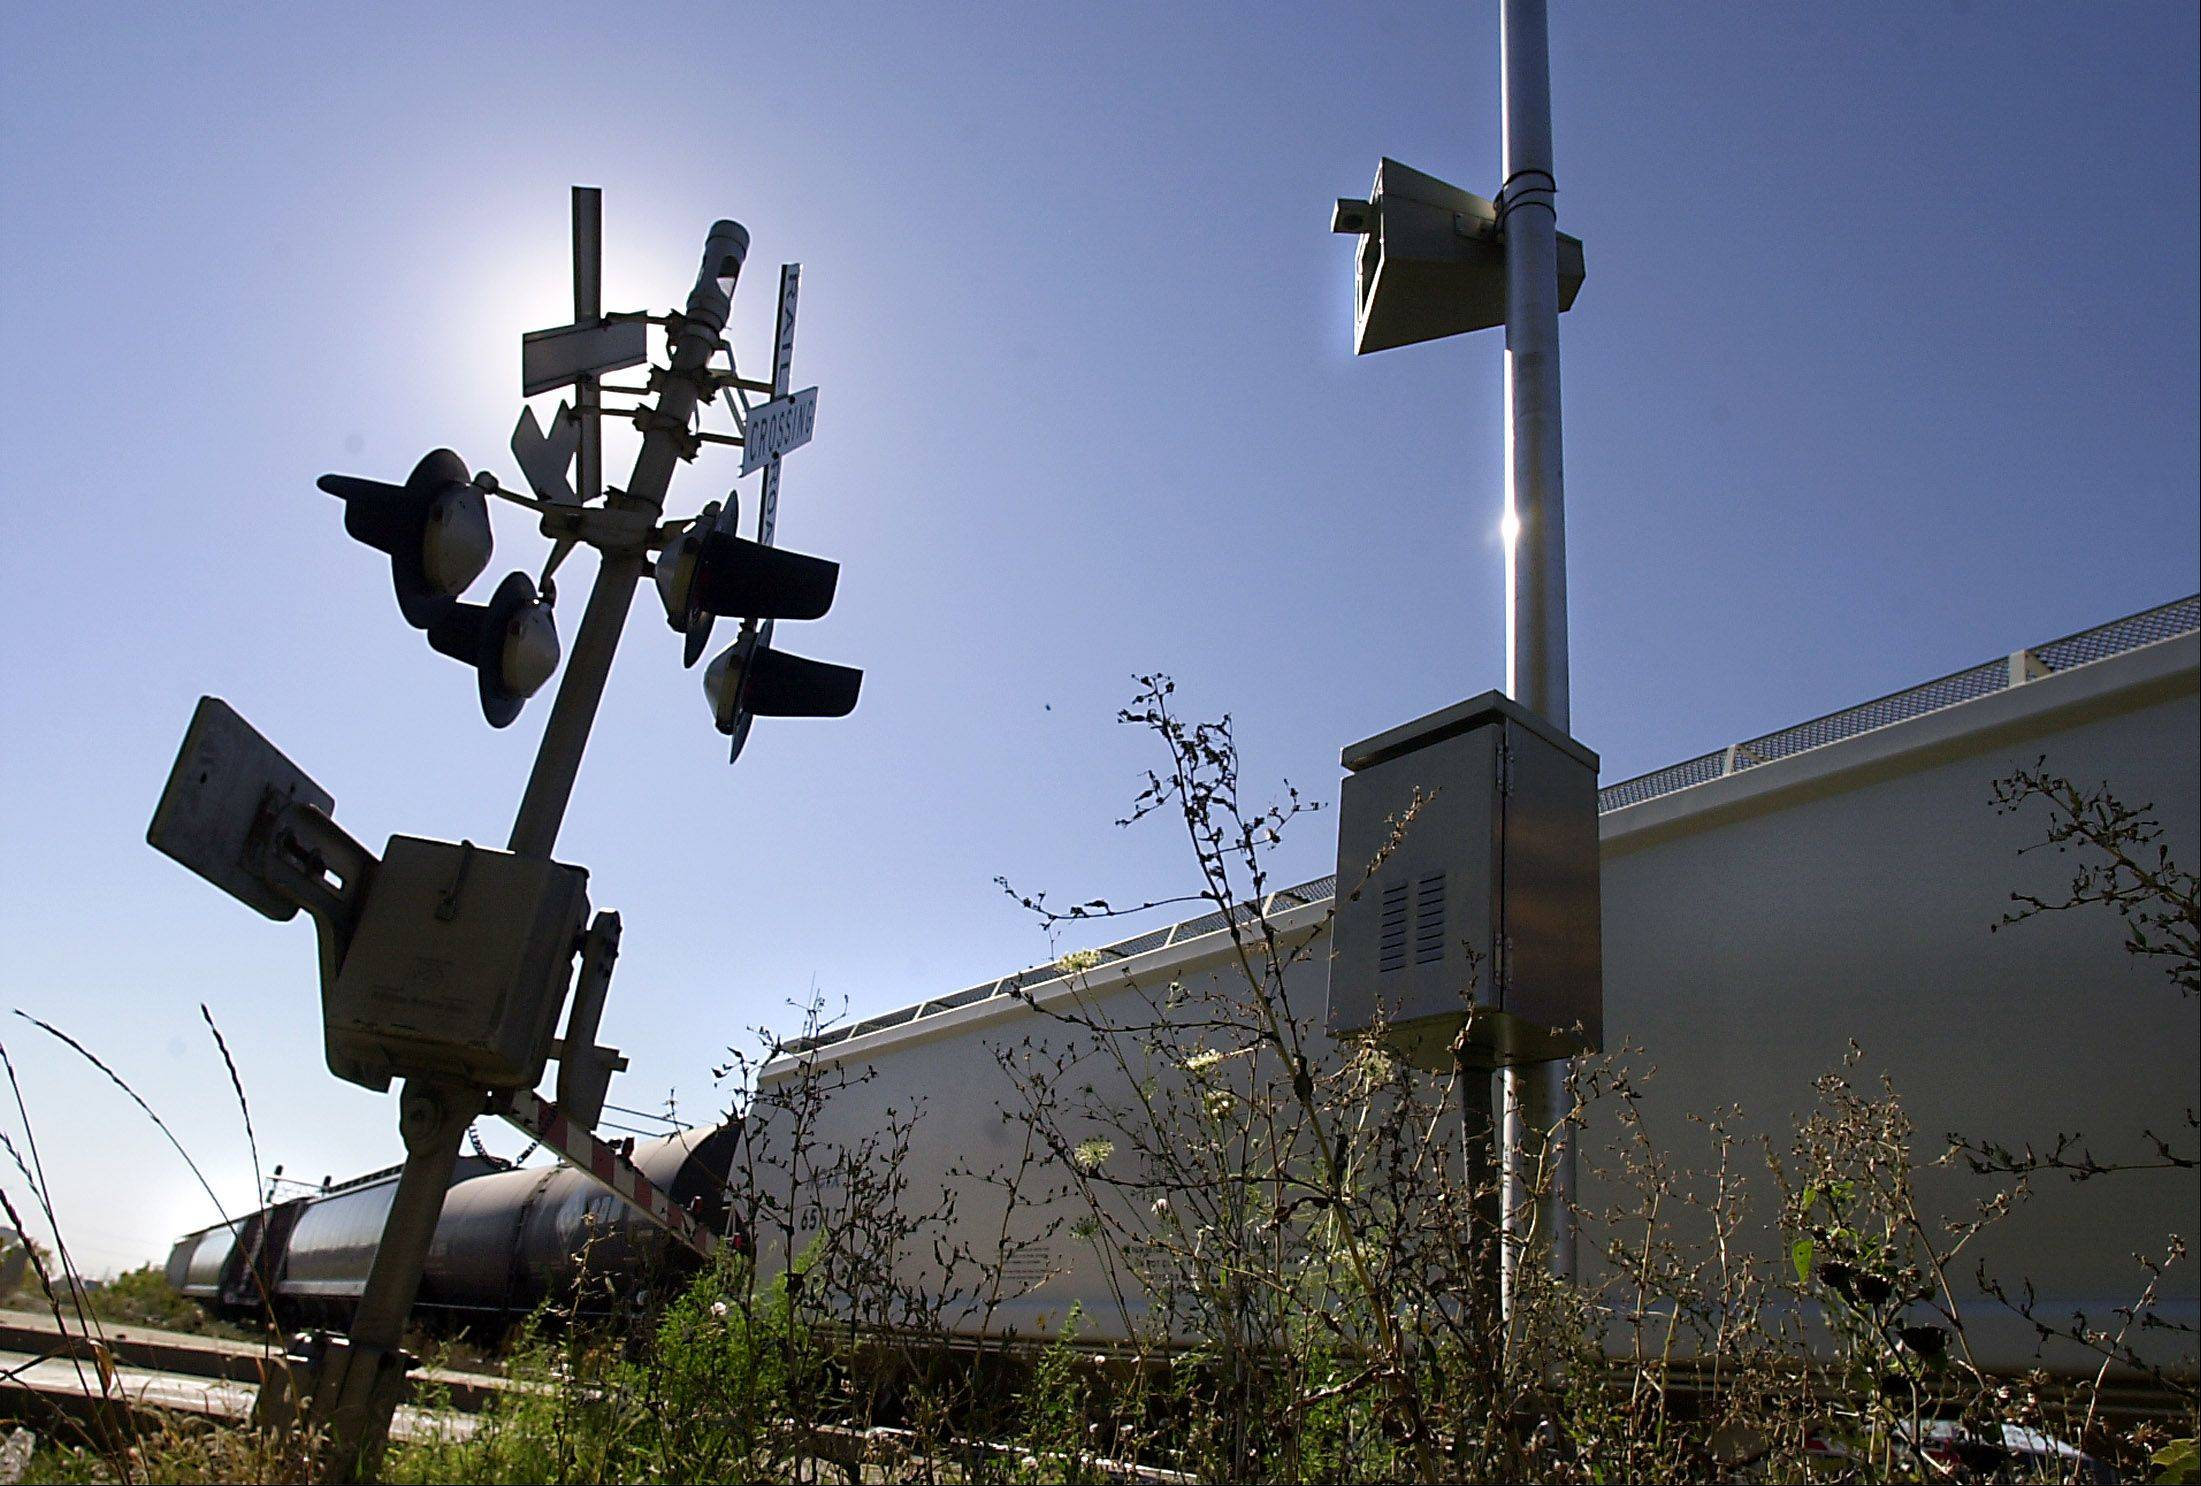 The automated train horn at the Allanson Road crossing in Mundelein is one of seven to be removed to reduce noise, village officials decided this week.